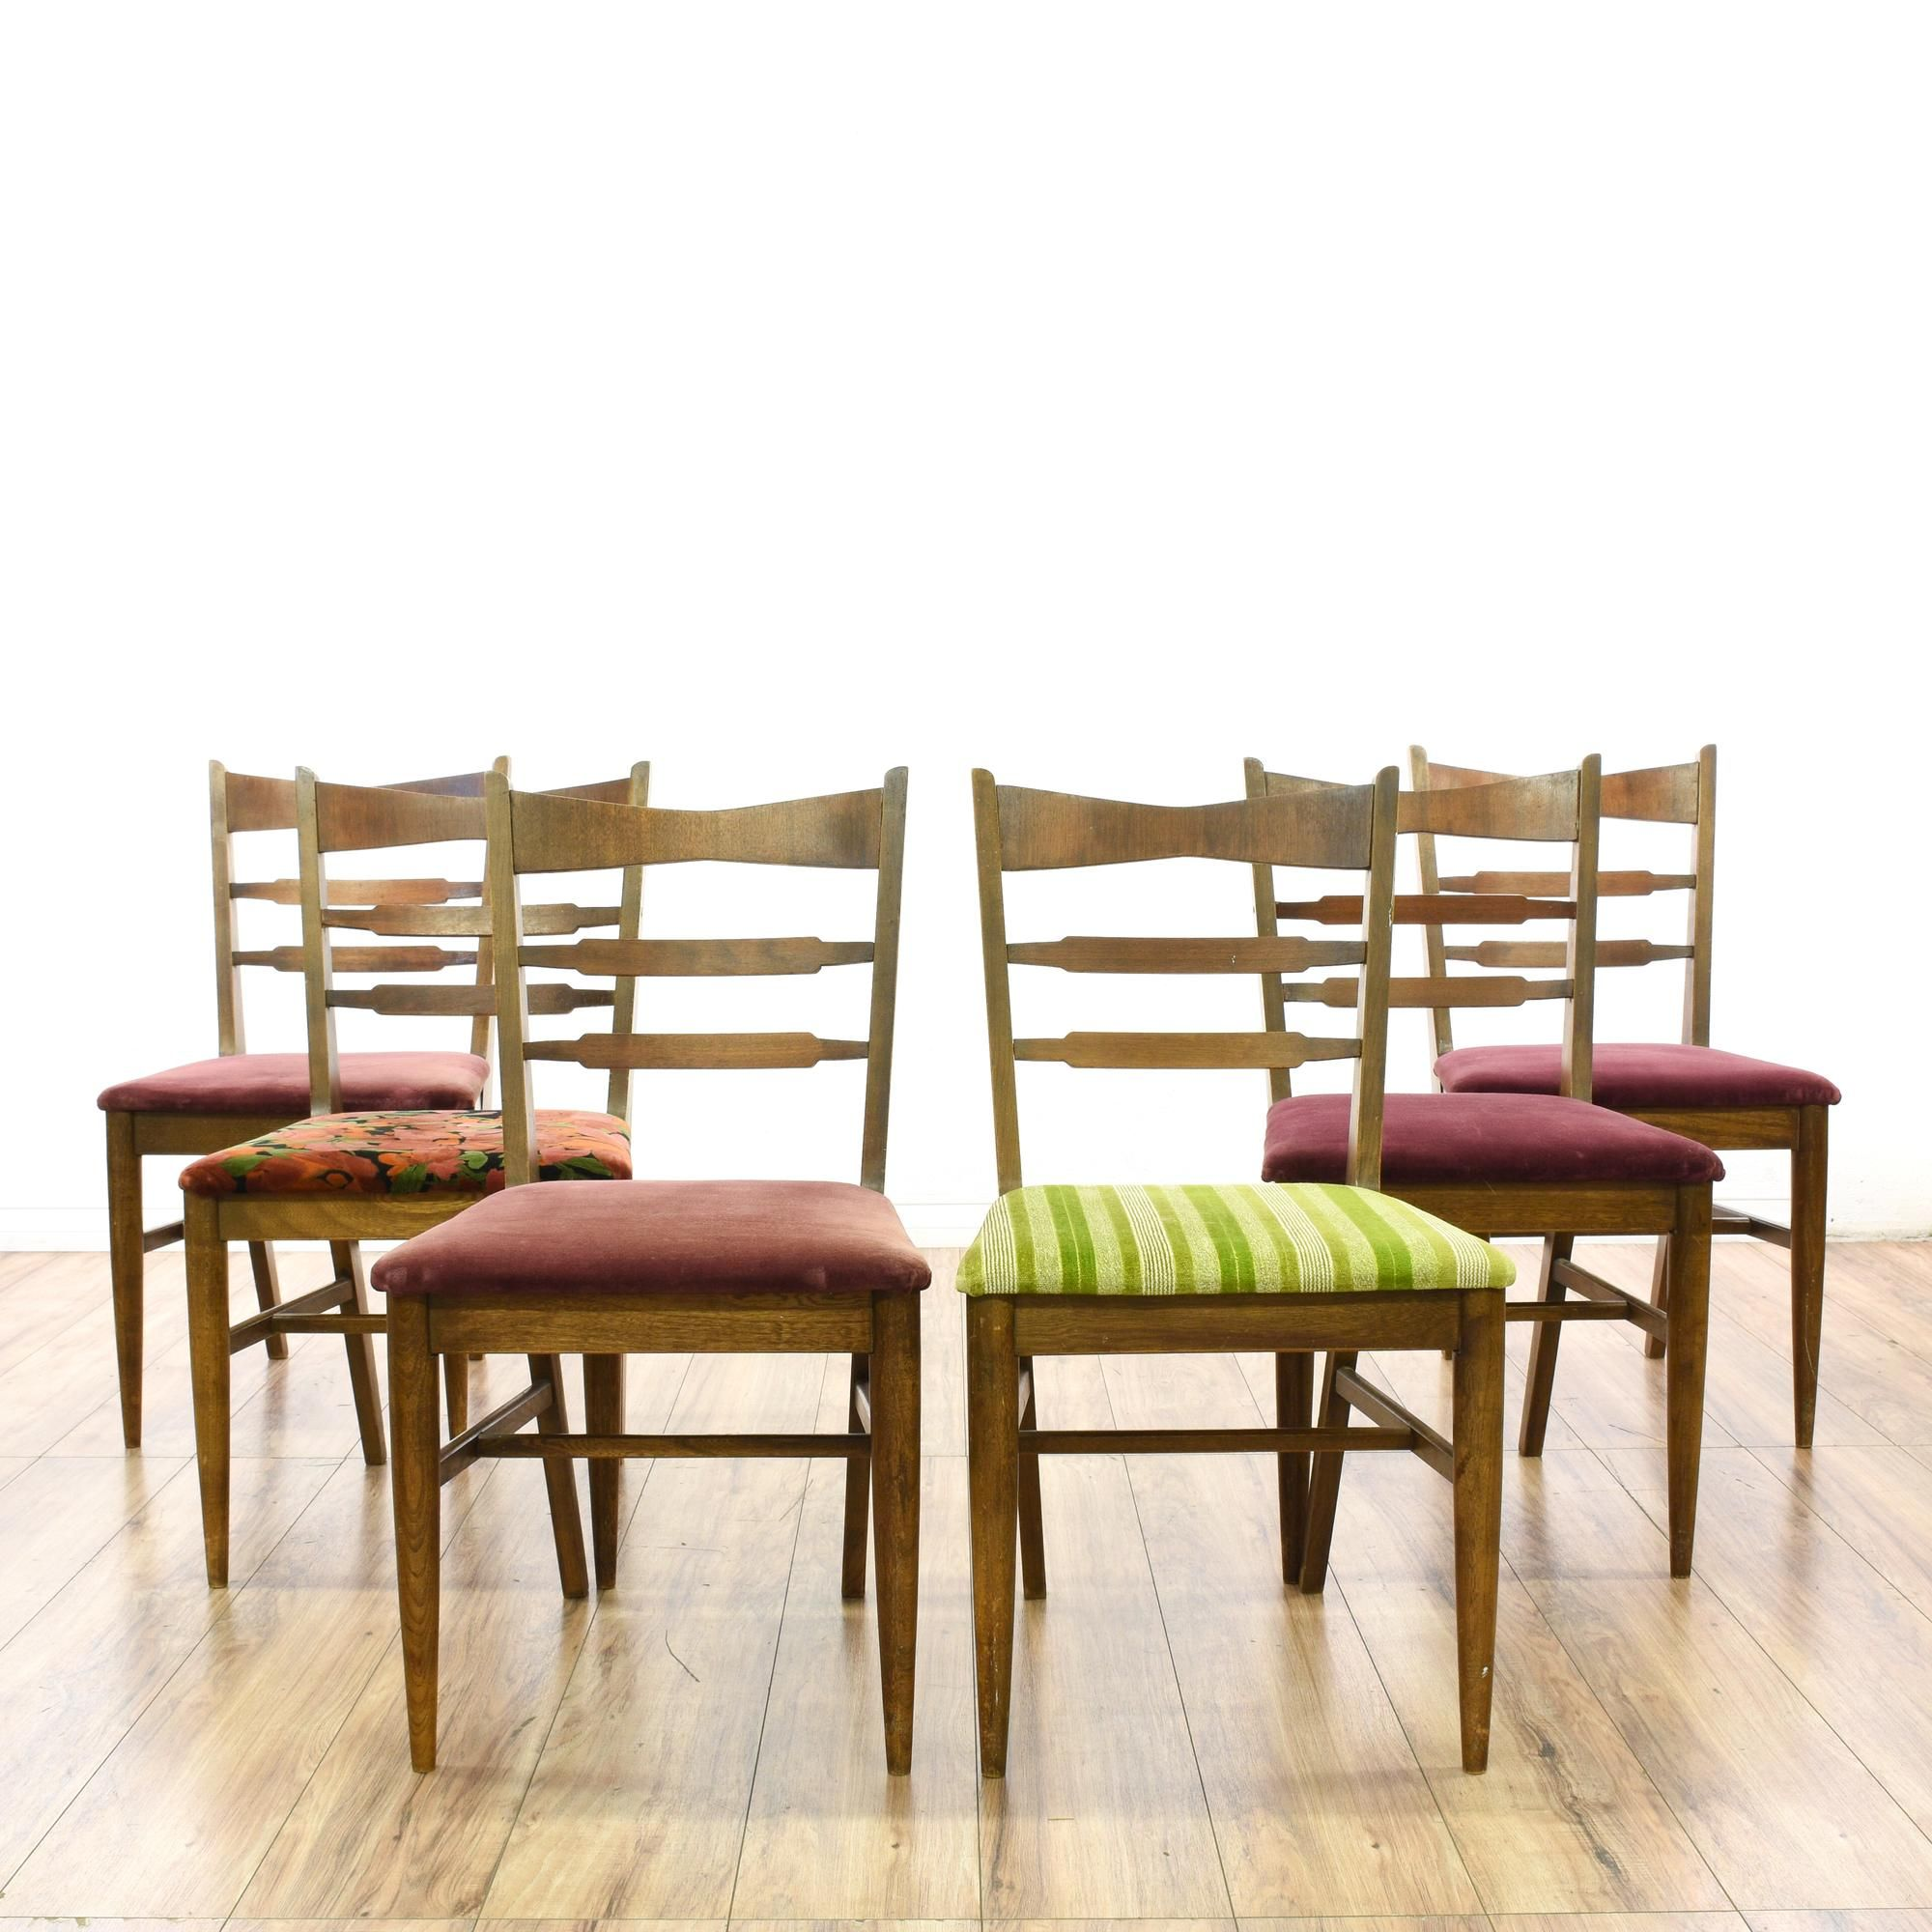 Each Mid Century Modern Style Side Chair Has An Upholstered Seat, Tapered  Legs, And H Stretcher Base. Fun ...